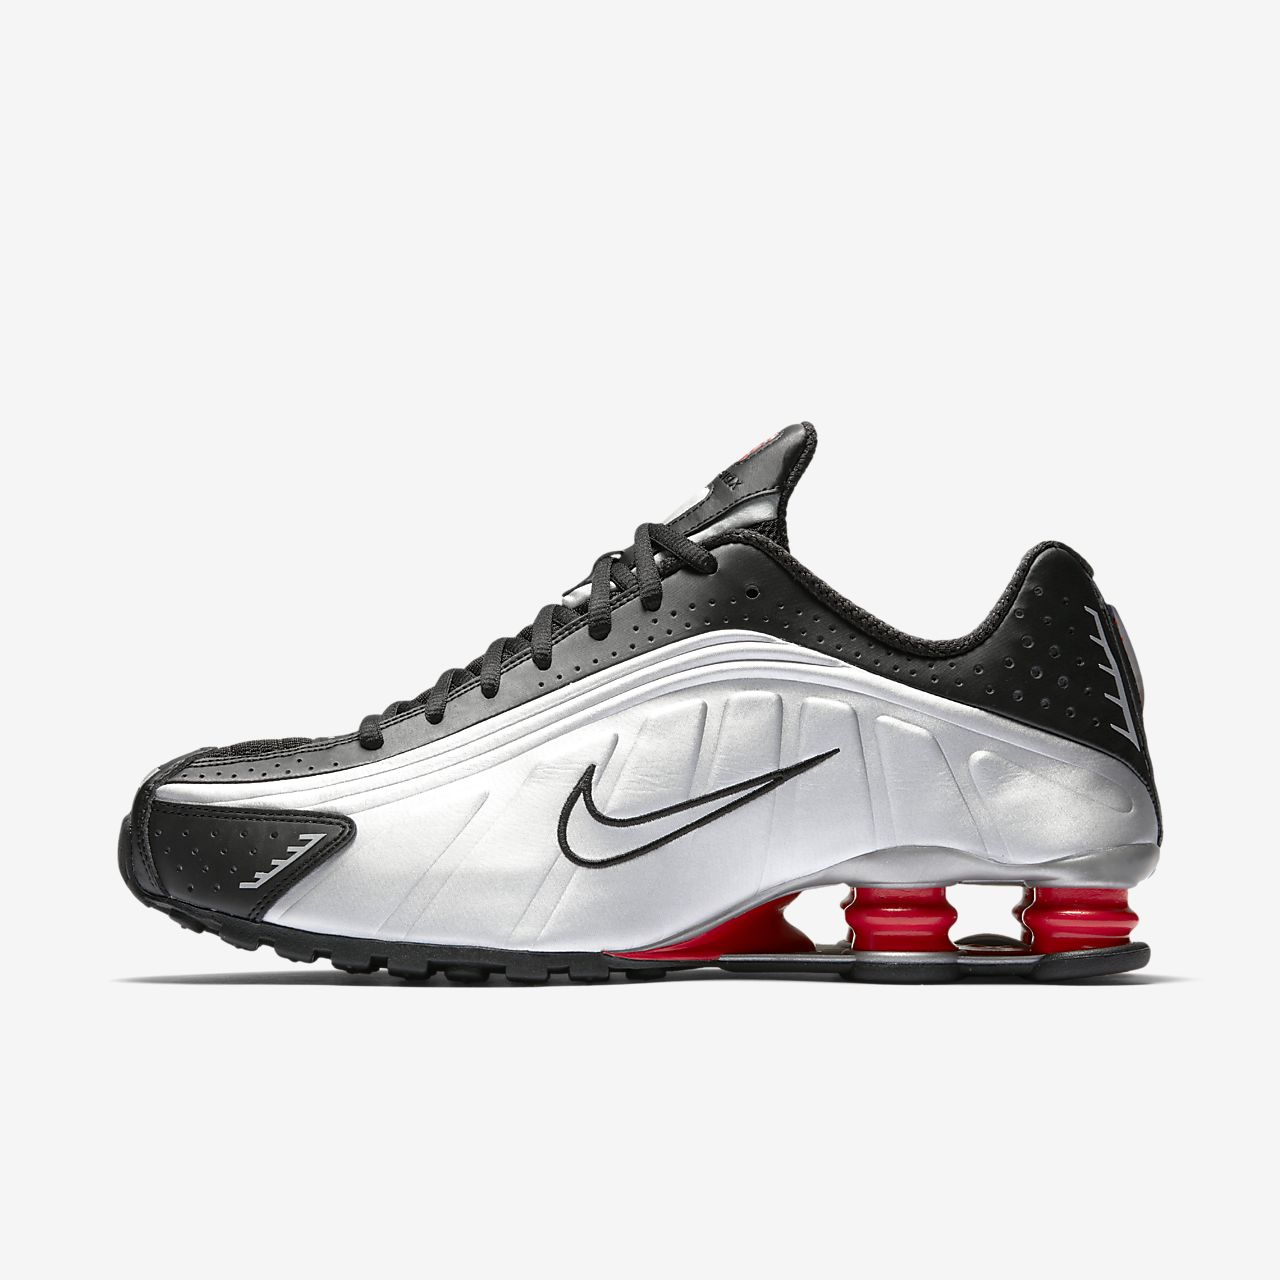 518b87bf94be Low Resolution Nike Shox R4 Shoe Nike Shox R4 Shoe